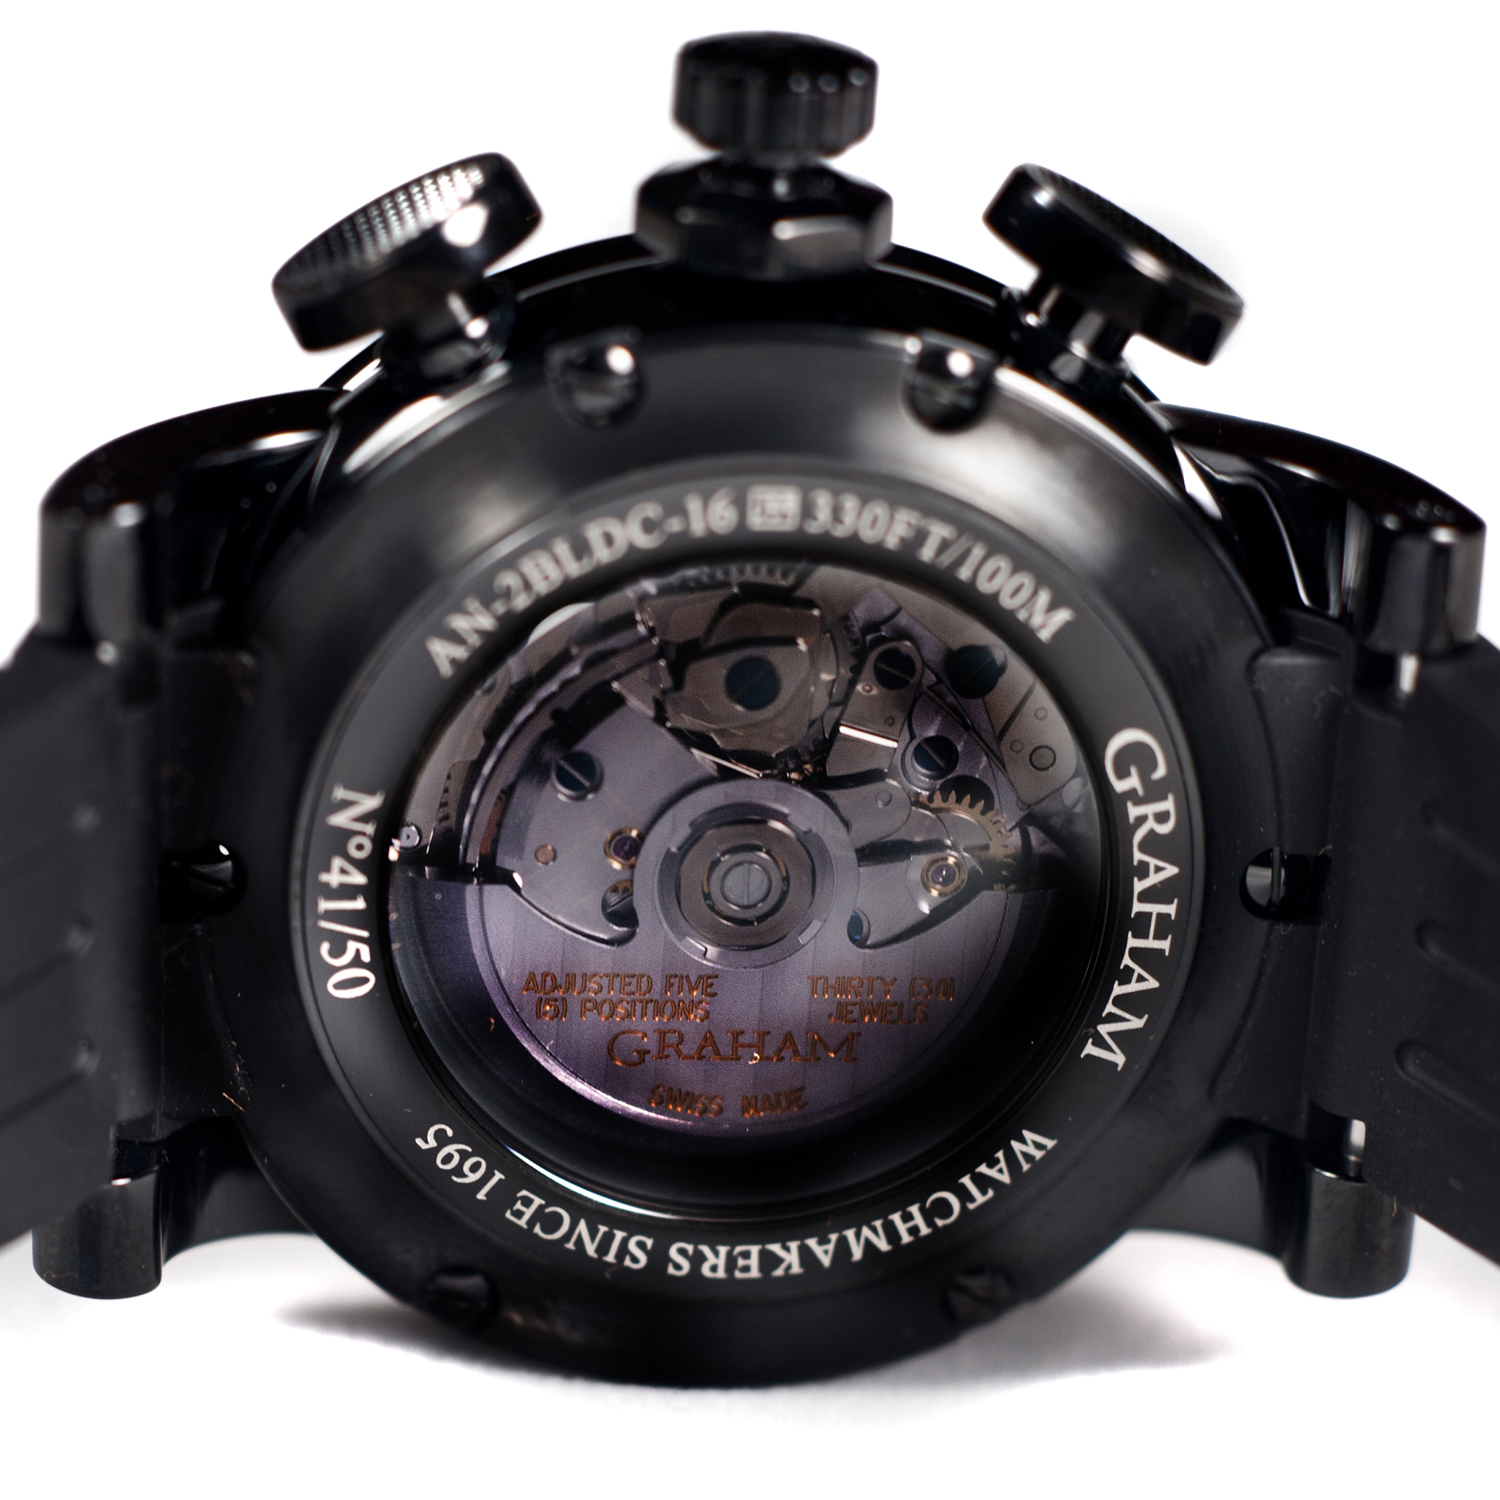 AN-2BLDC-15 Graham Silverstone Stowe 30 Jewels Automatic Racing Chrono BLK/YEL Only 50 PCS Made